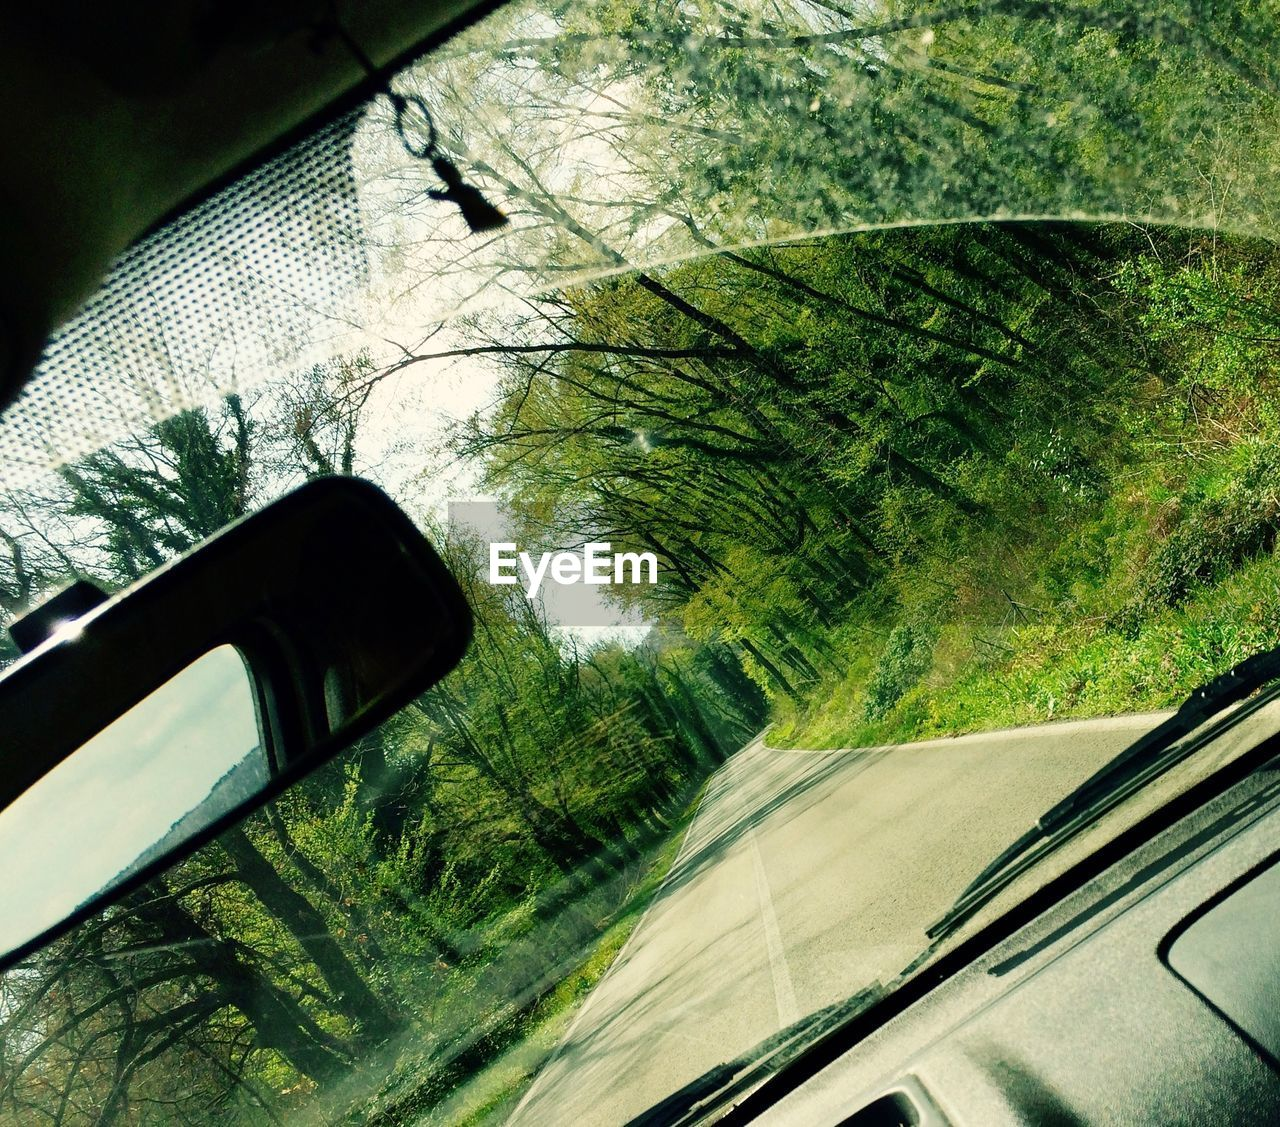 car, transportation, land vehicle, mode of transport, tree, reflection, side-view mirror, journey, road, day, windshield, no people, window, travel, car interior, close-up, road trip, vehicle mirror, outdoors, nature, sky